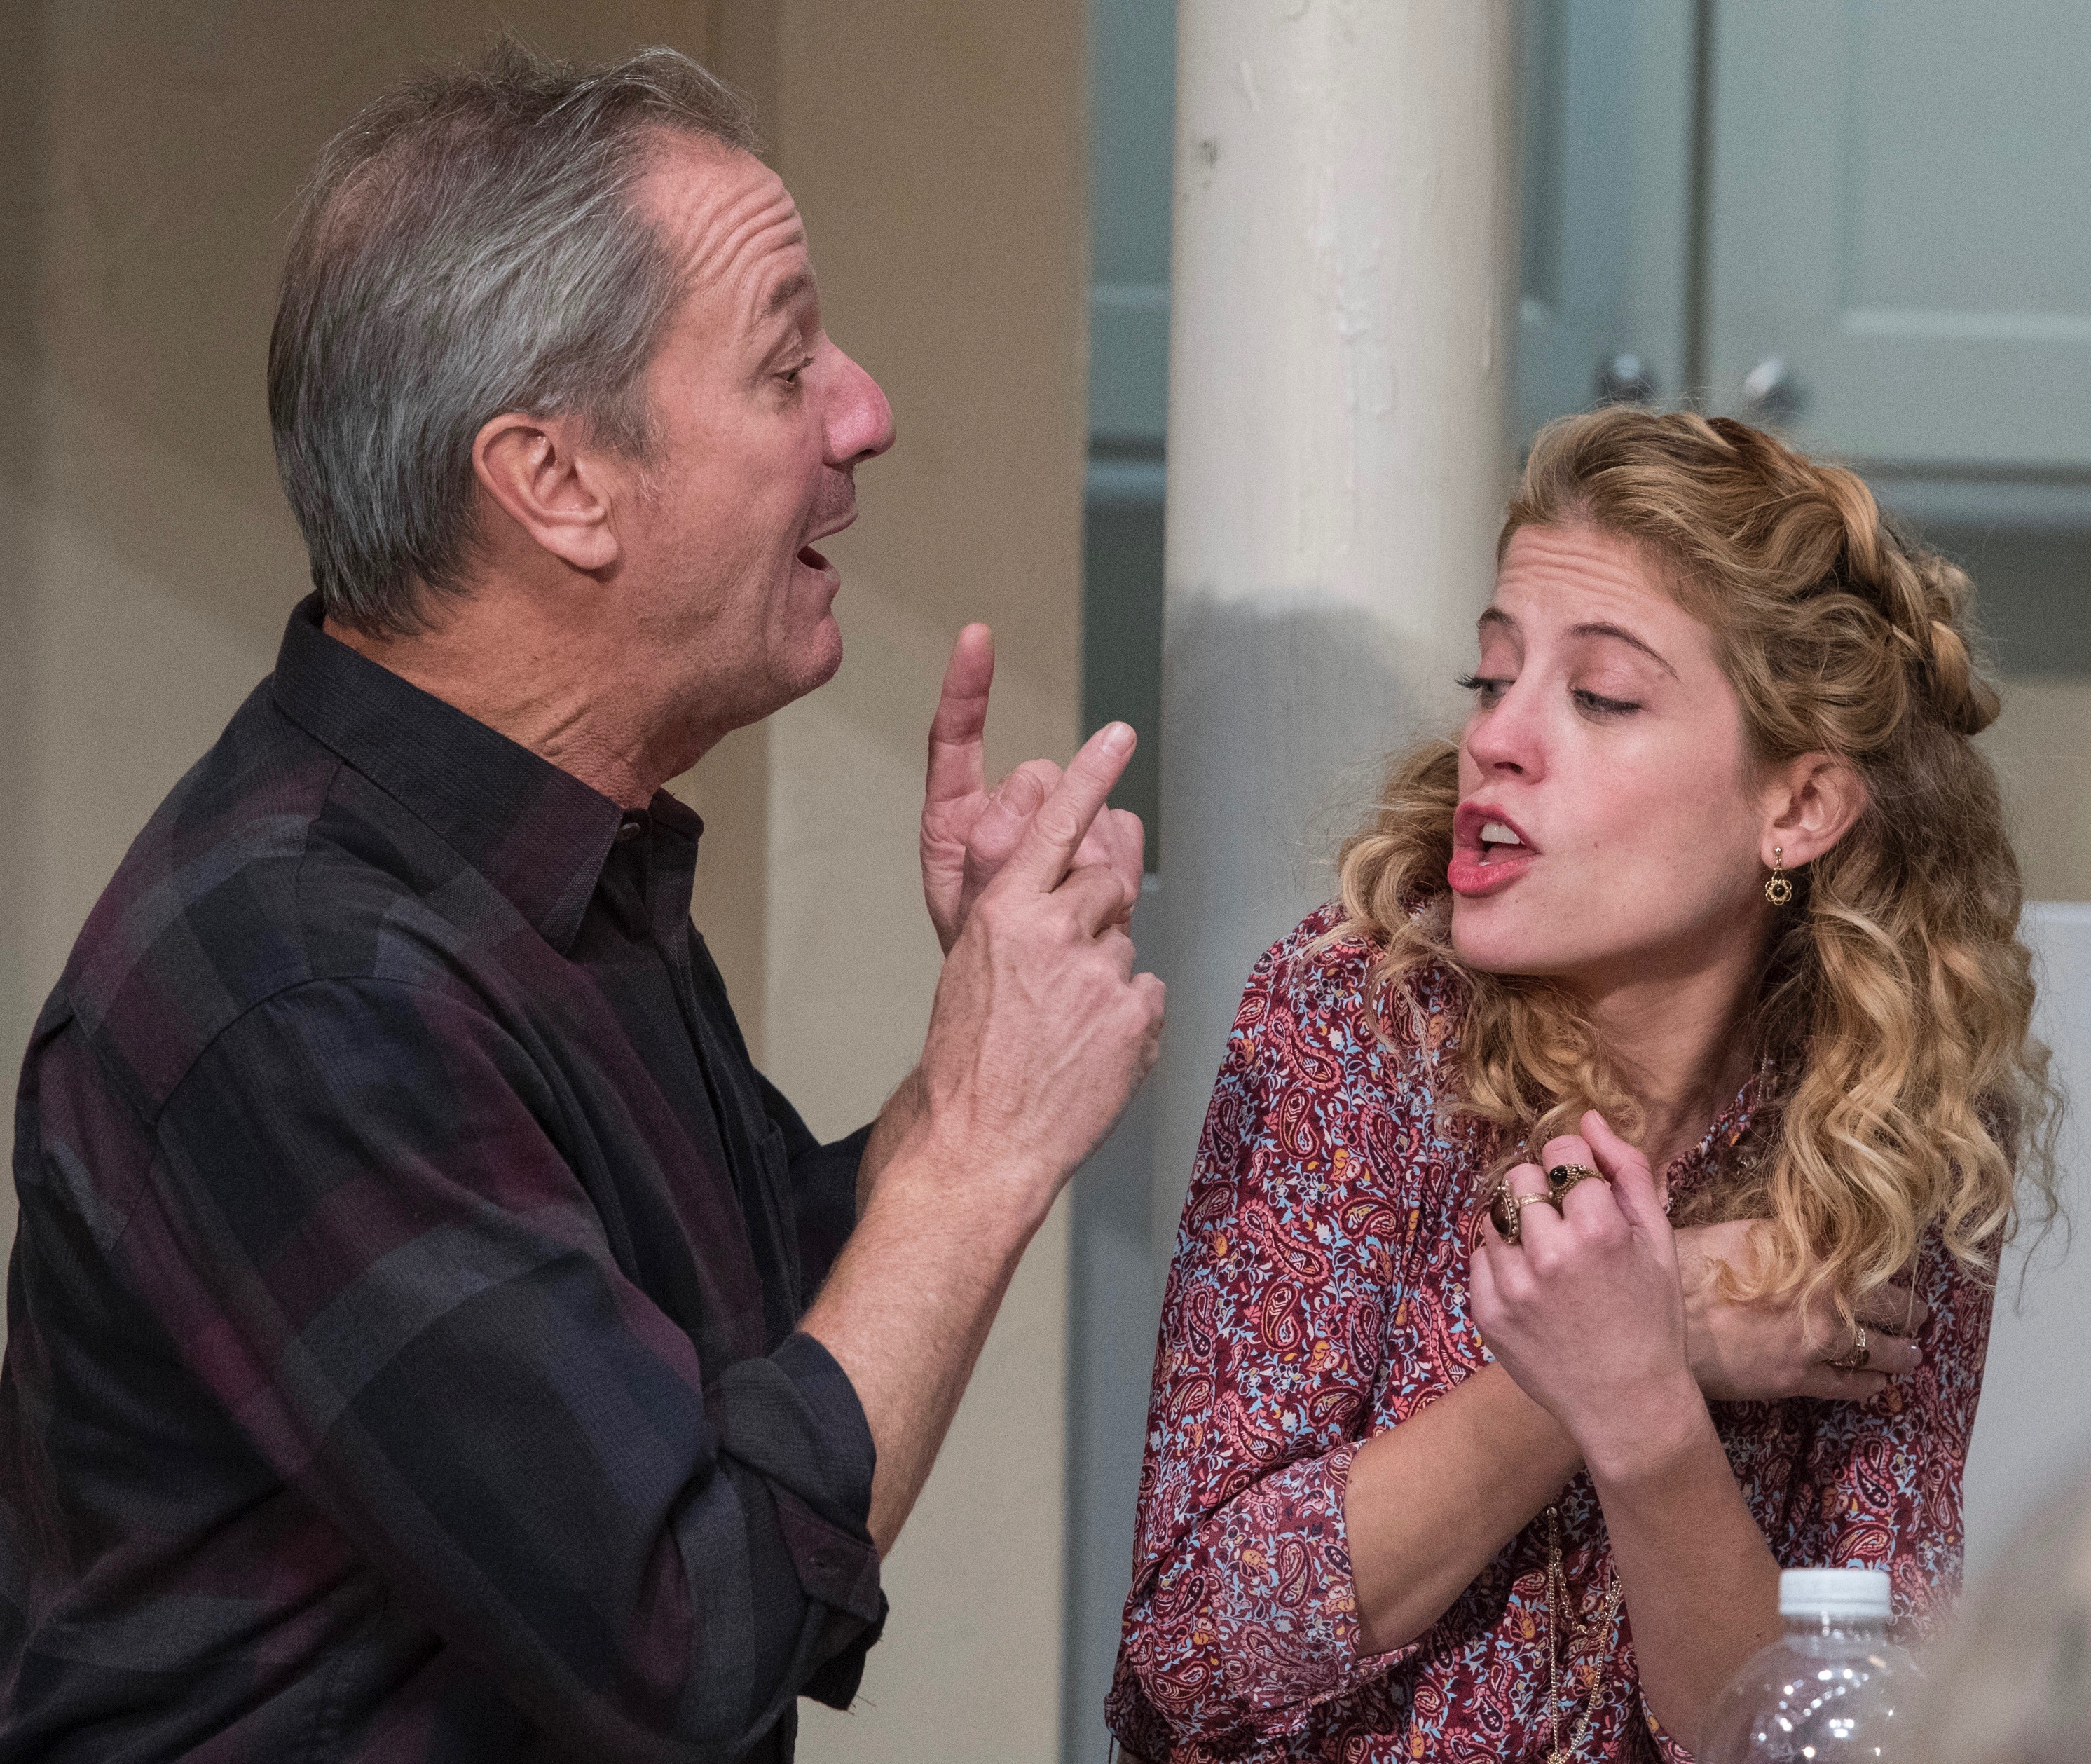 Dad (J. Tucker Smith) wants to tell it his way while Brigid (Valeri Mudek) has her signals crossed.